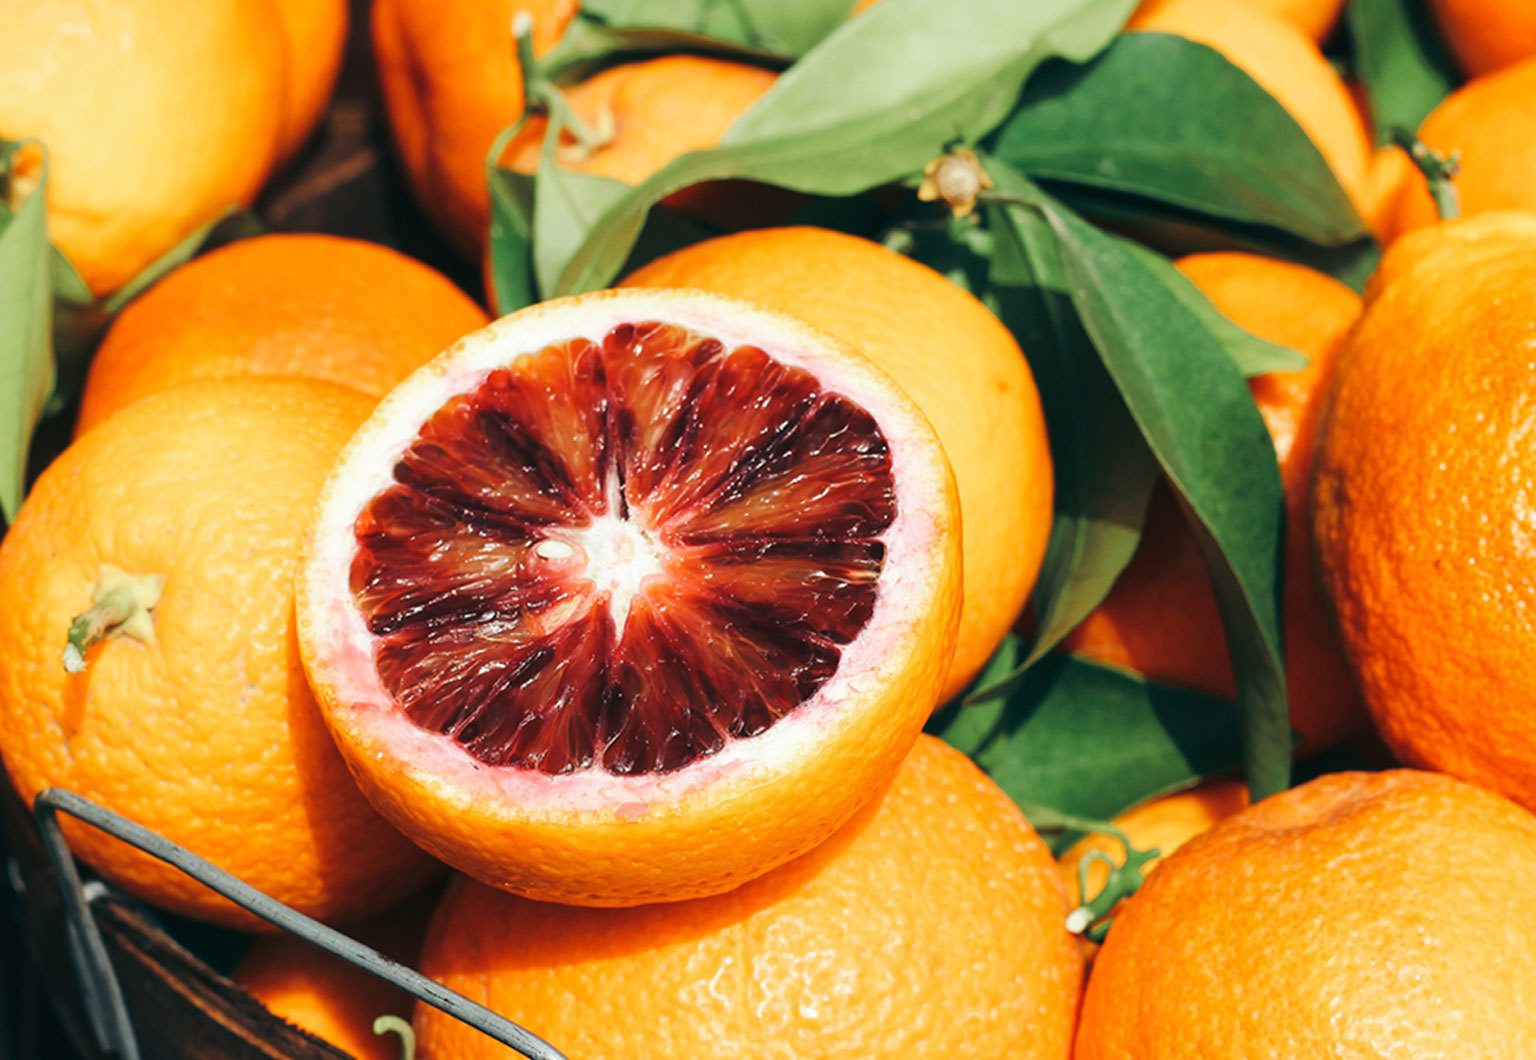 Basket of Sicillian Blood Oranges, with one cut open to see the ruby-red flesh